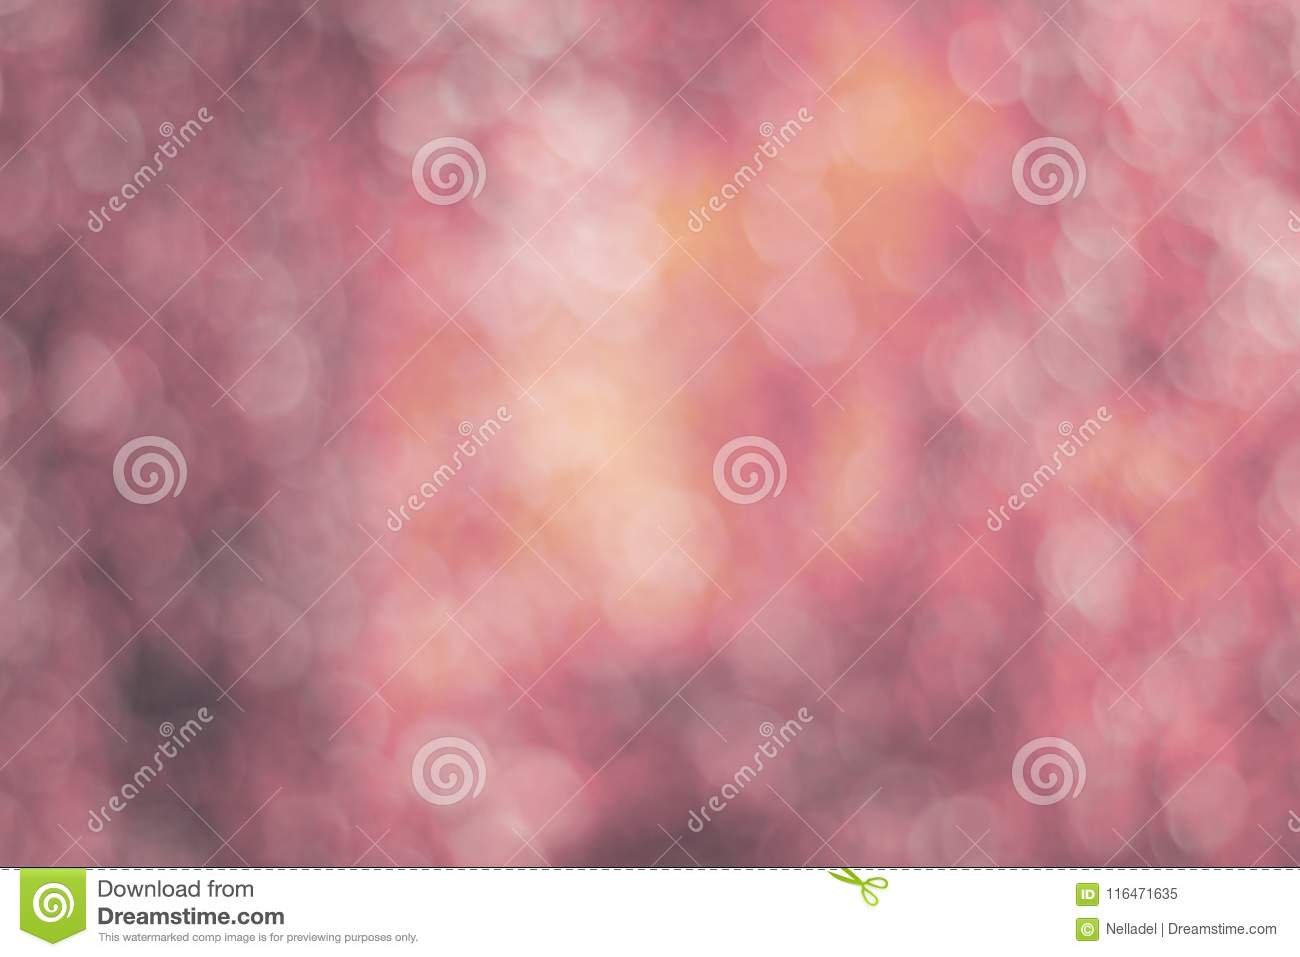 Texture made of defocused pink background with bokeh toned image